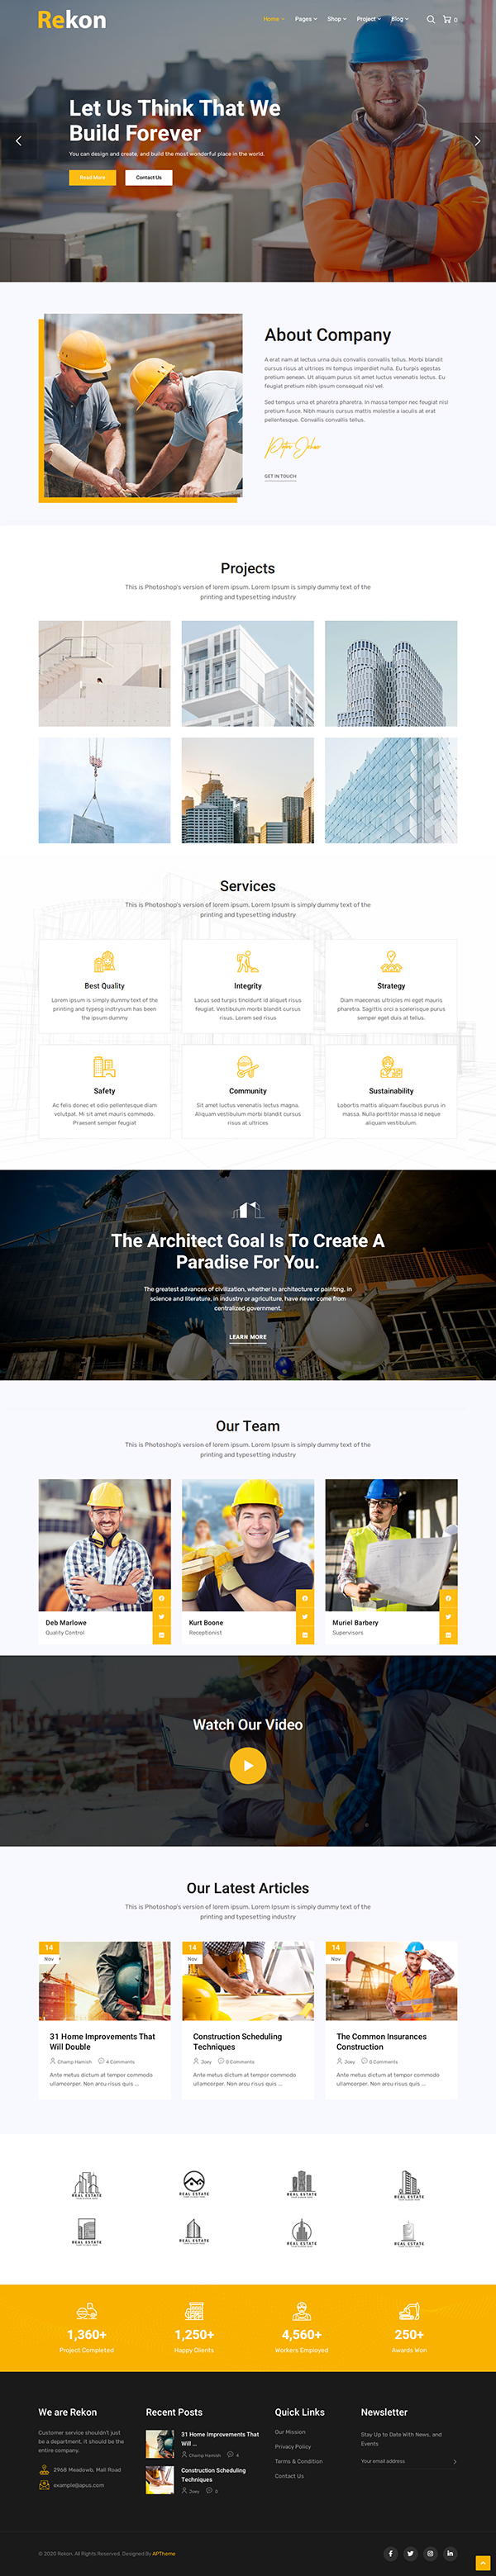 Rekon - Construction WordPress Theme